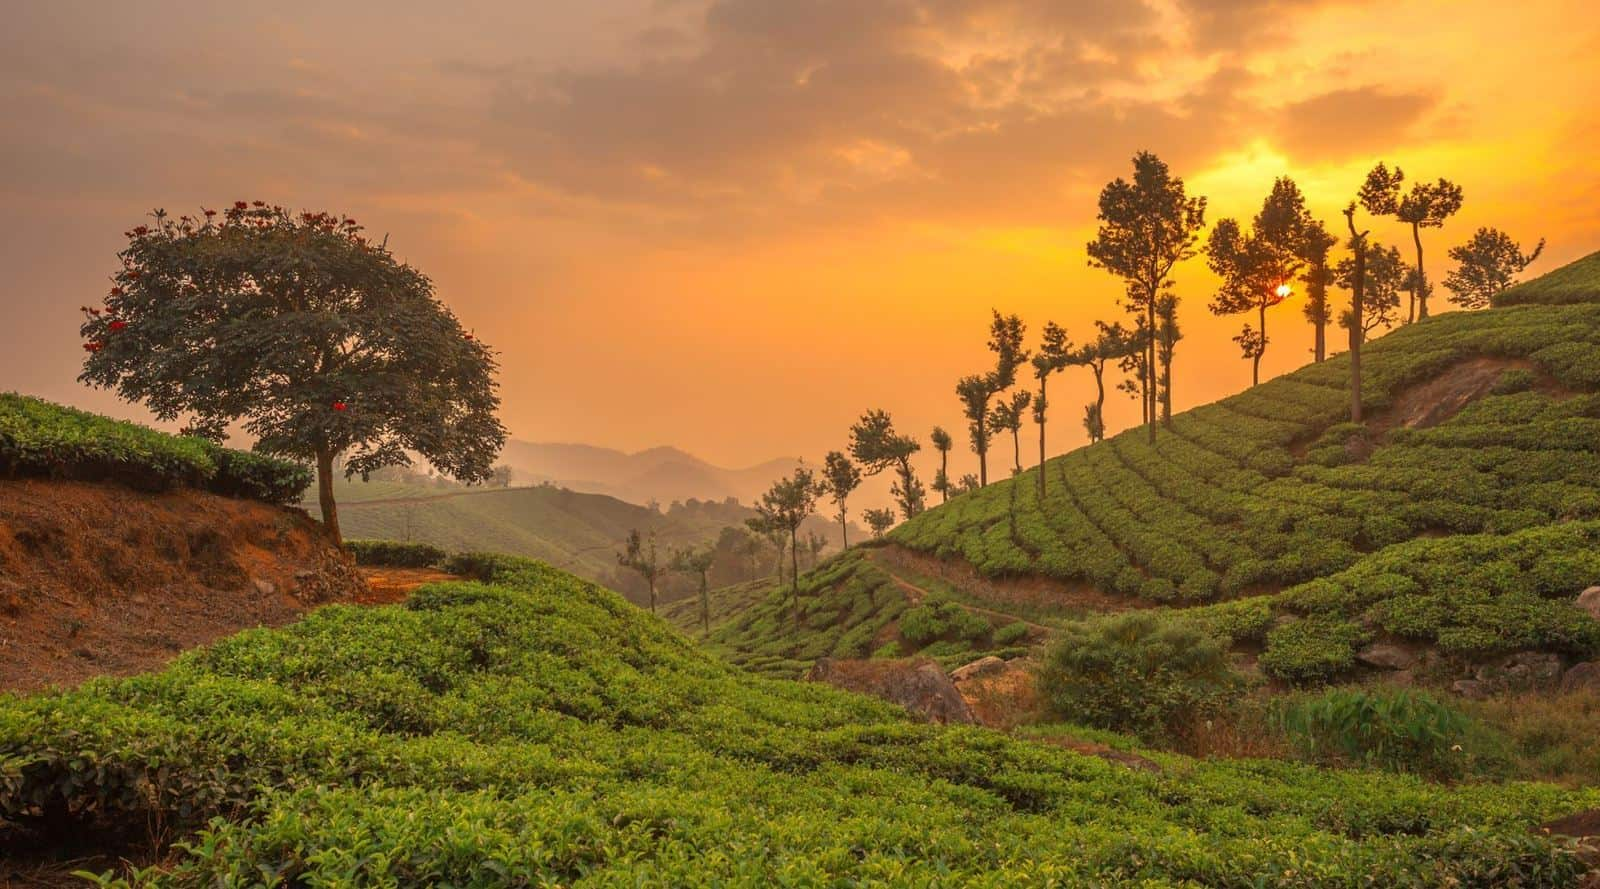 what is tea terroir and how does it affect the tea's aroma and flavor?